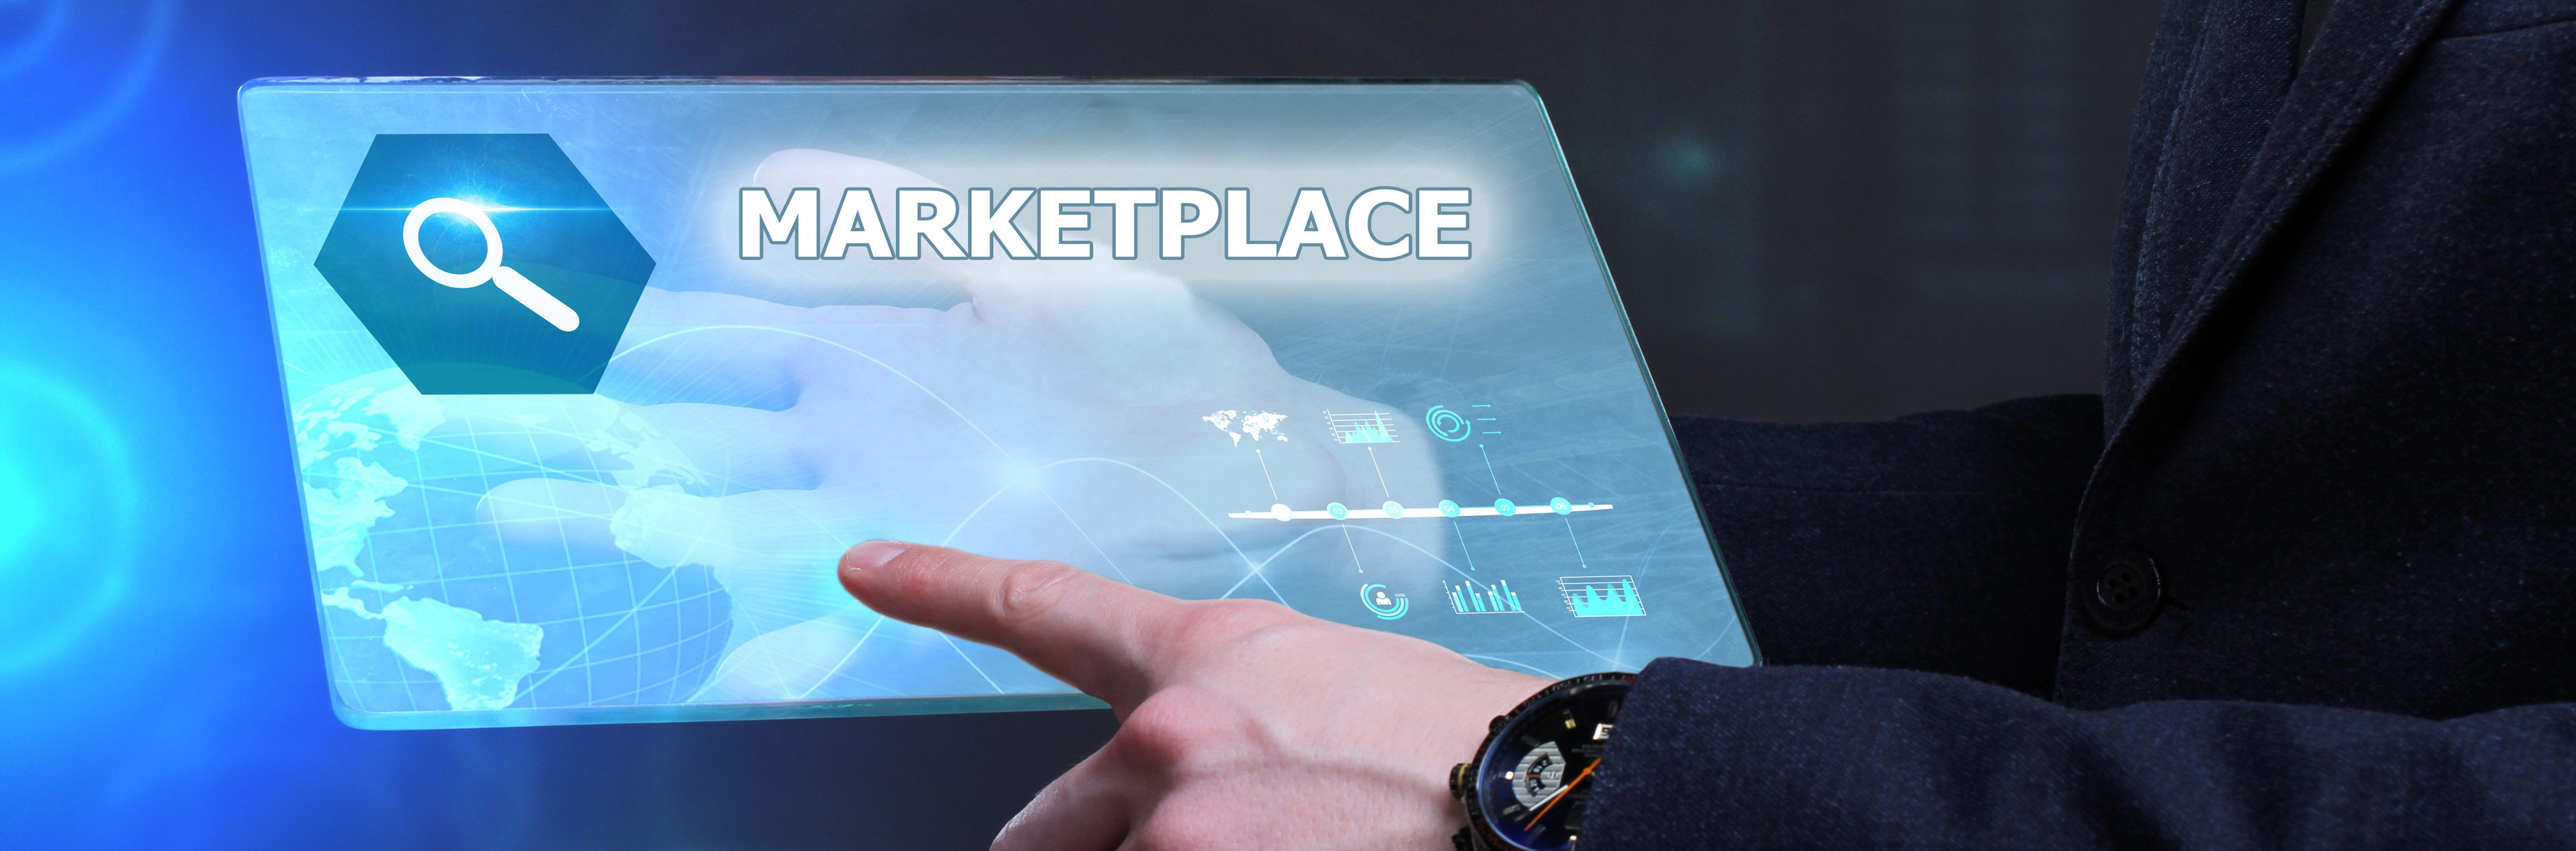 medmarket marketplace